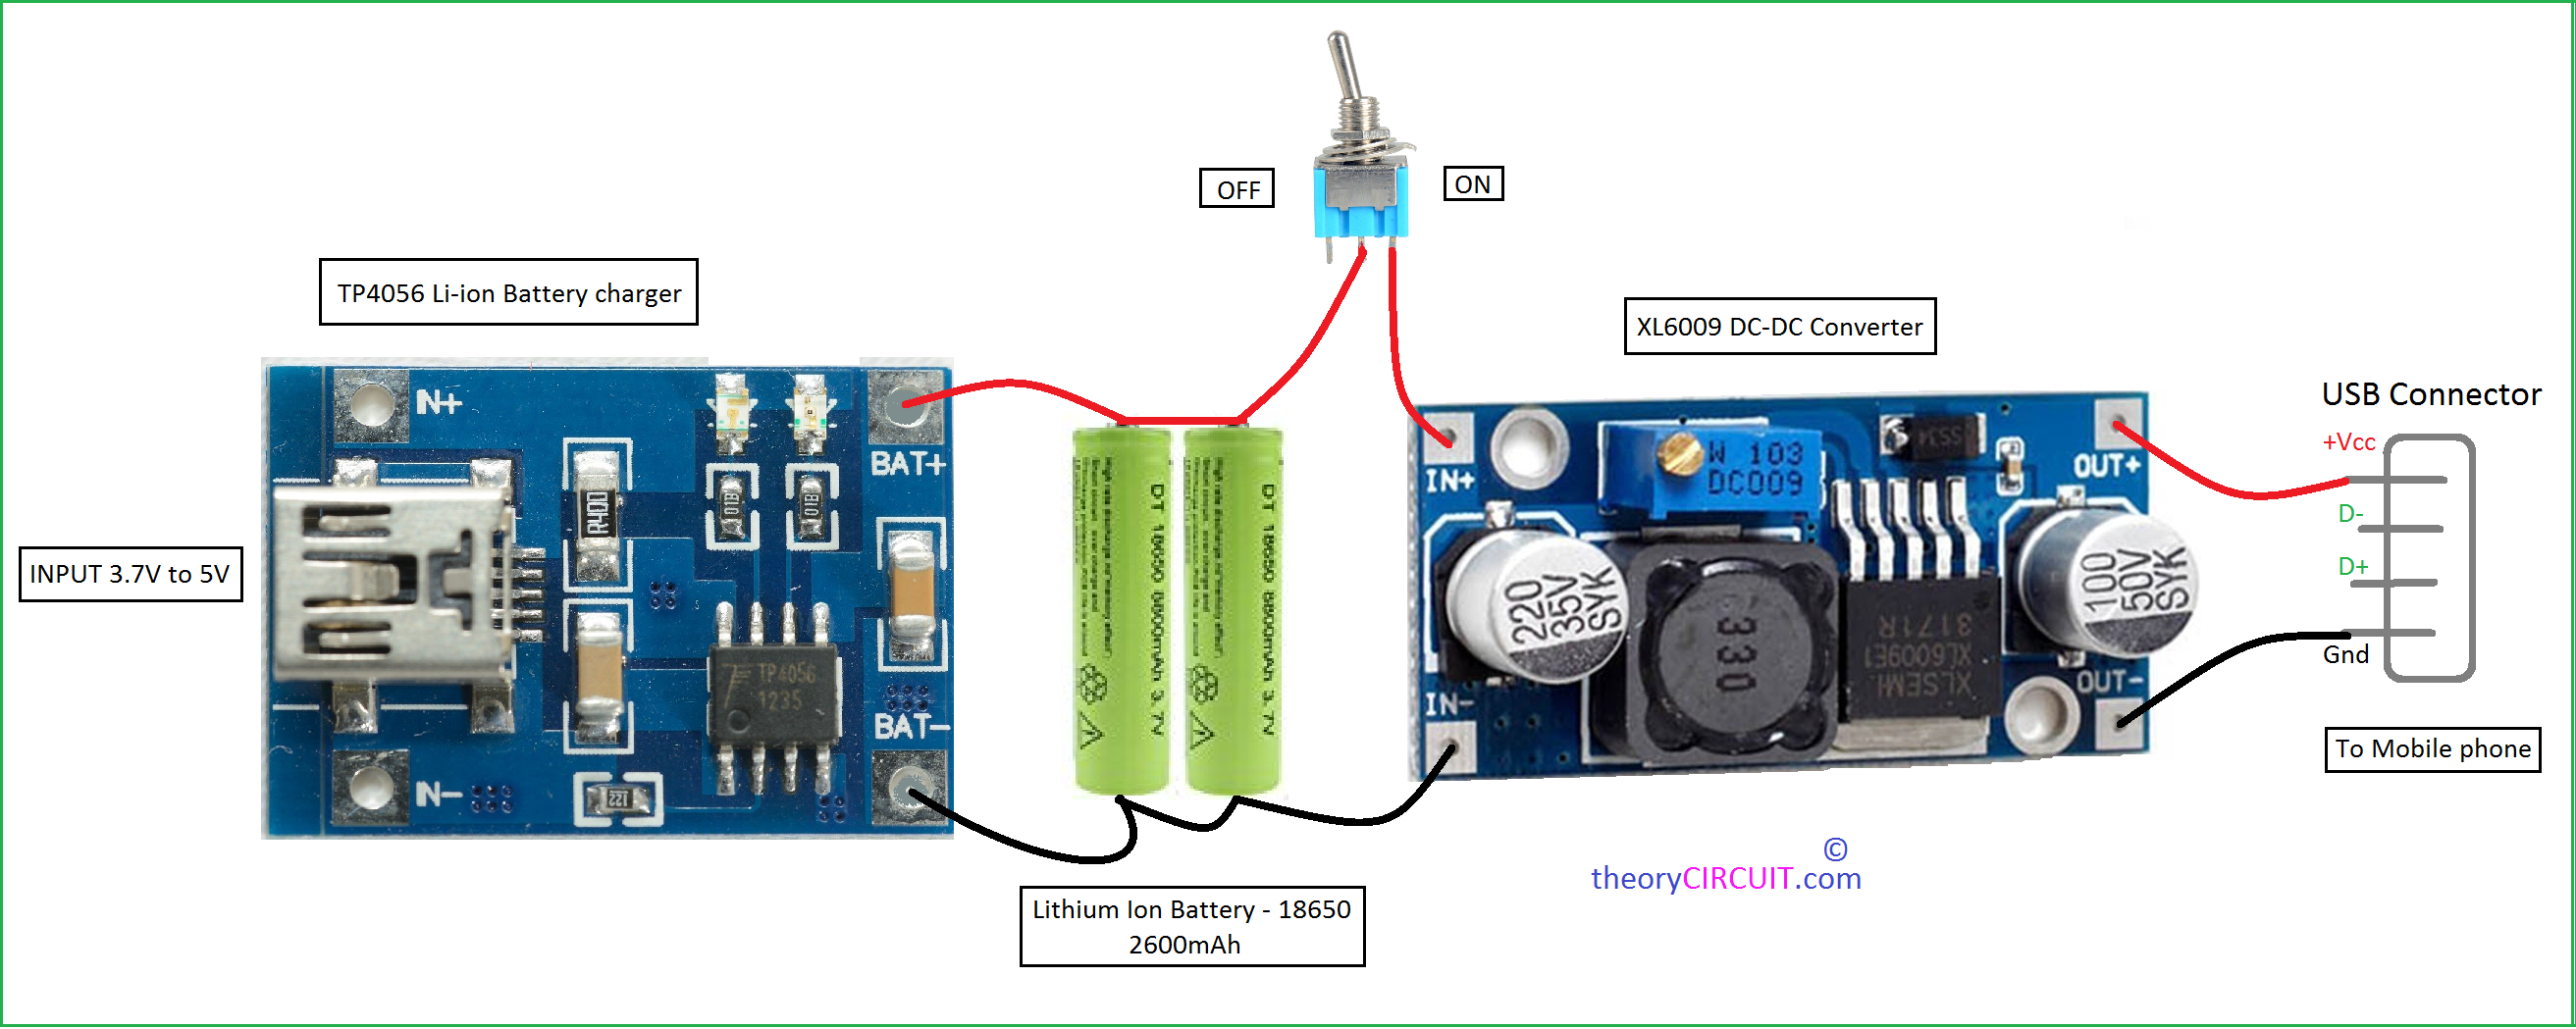 Power Bank Circuit For Smartphones Variablerangeledvoltmeterprojectcircuit